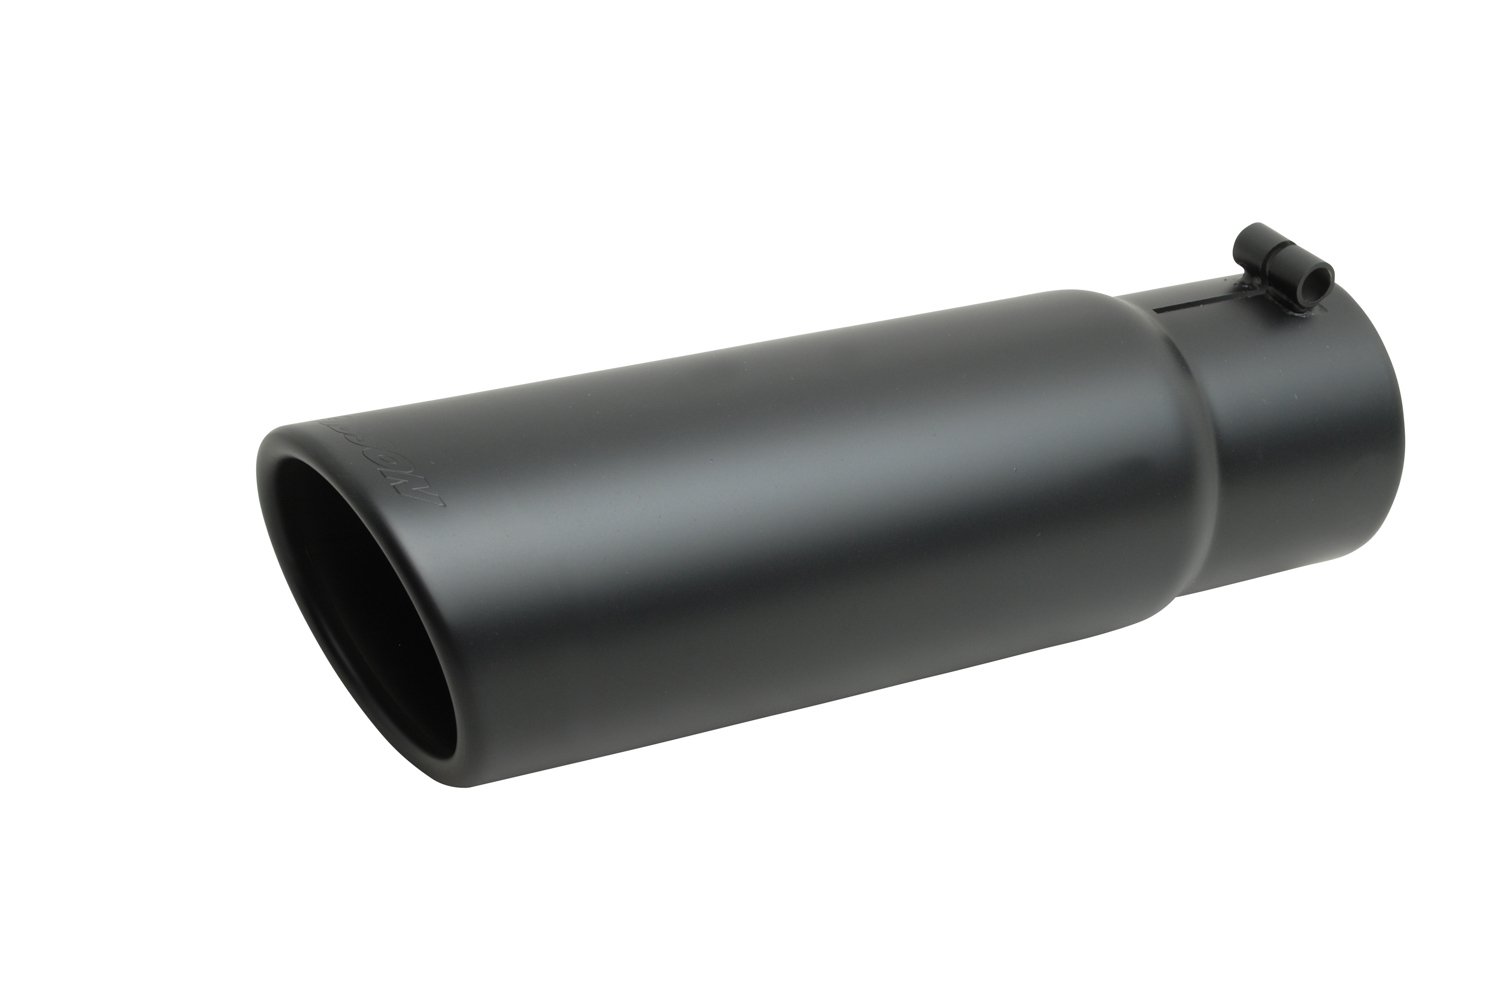 Gibson Exhaust Black Ceramic Rolled Edg e Angle Exhaust Tip